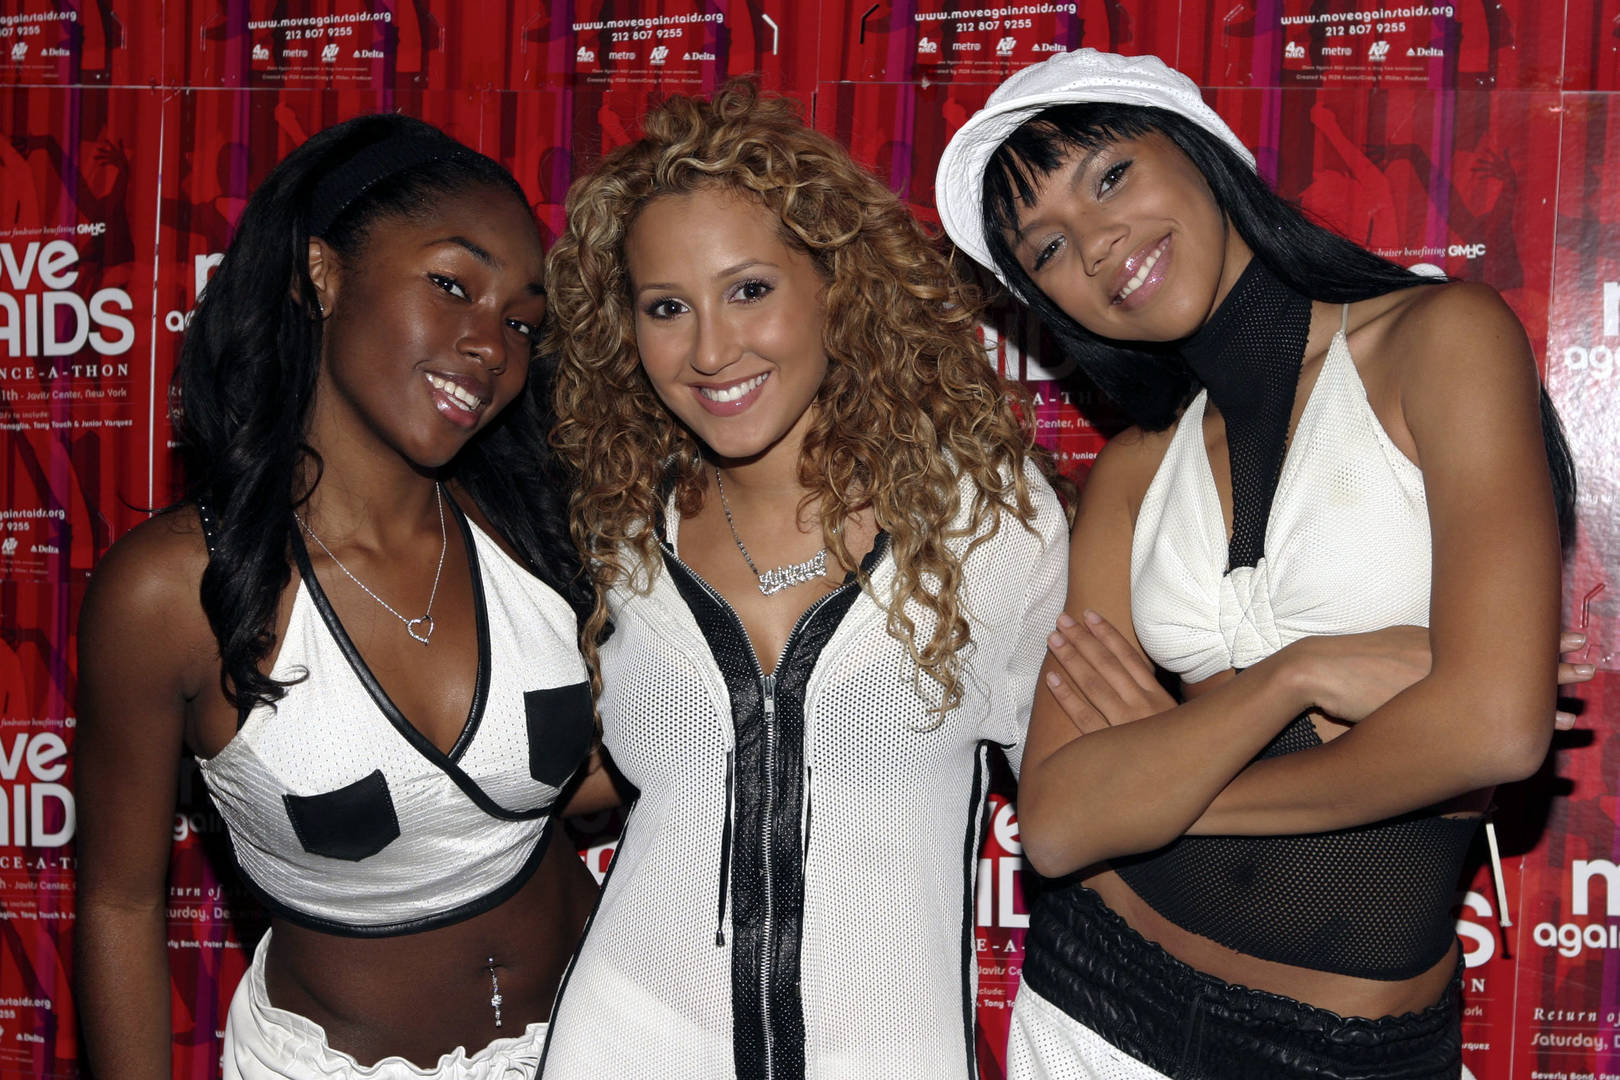 Kiely Williams Farrah Franklin 3LW Destiny's Child drag shade fight resurfaced footage feud beef